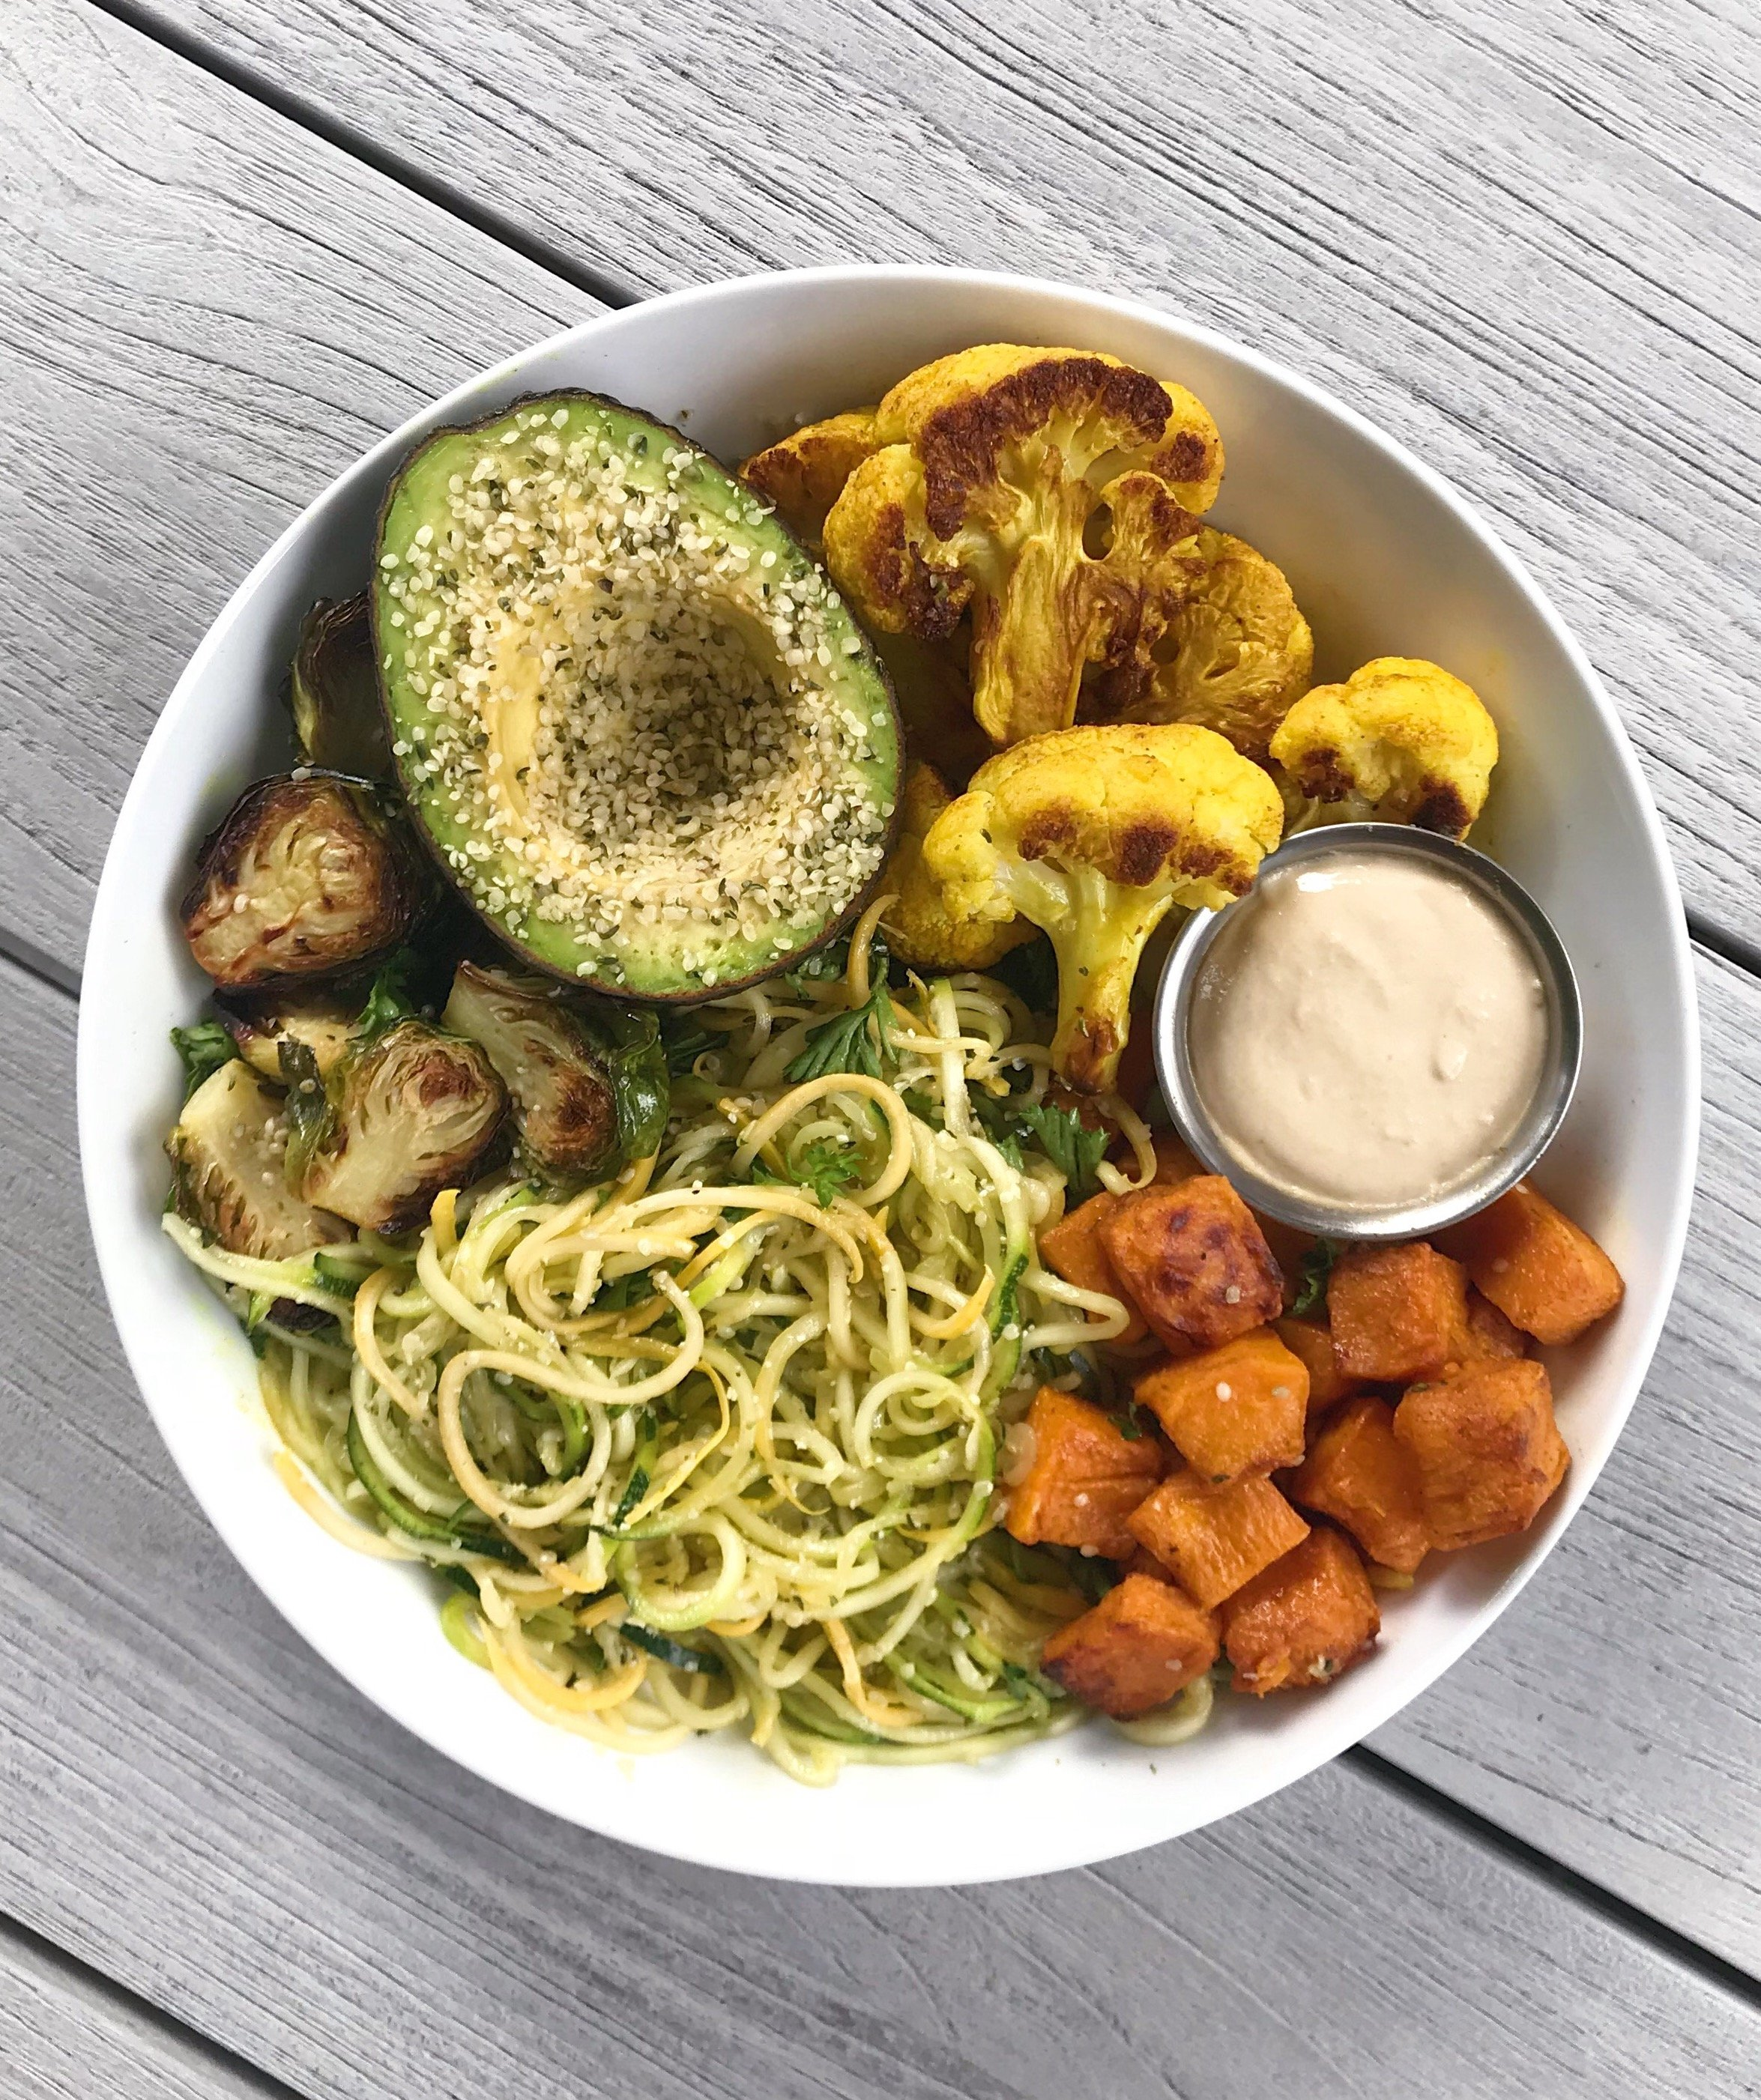 Garlicky Lemon Zoodles roasted veggies tahini sauce#glutenfree #glutenfreerecipes www.healthygffamily.com